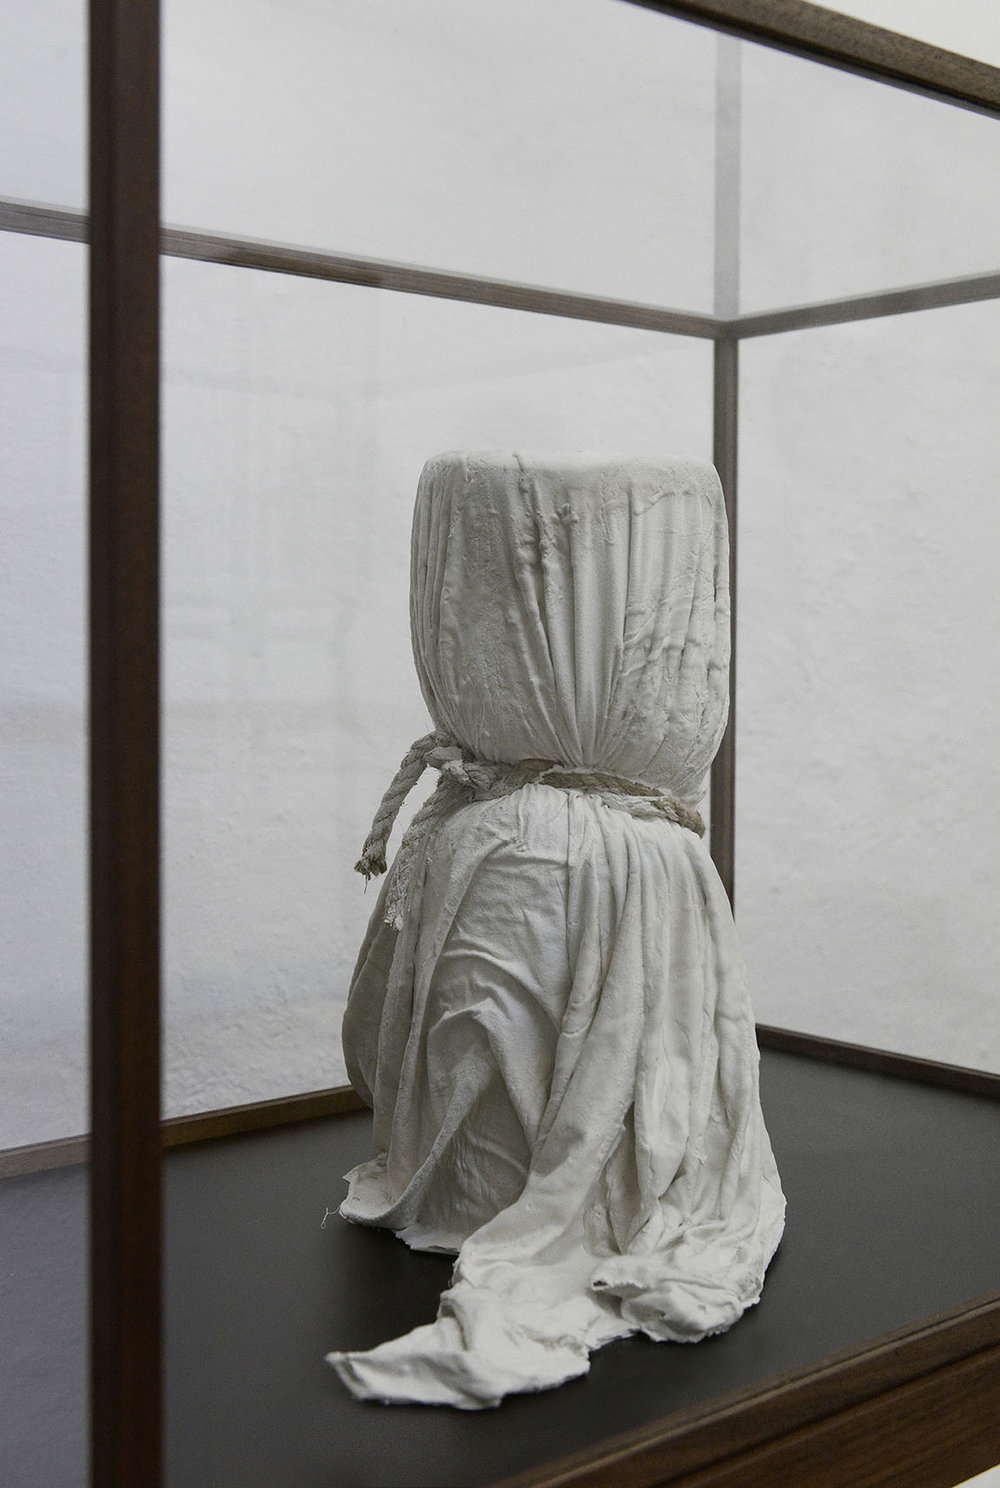 """Valérie Collart """"Enigme 2,"""" 2017 (Plaster and fabric in Walnut display case, 160x58x46 cm). Photo: Valérie Collart."""